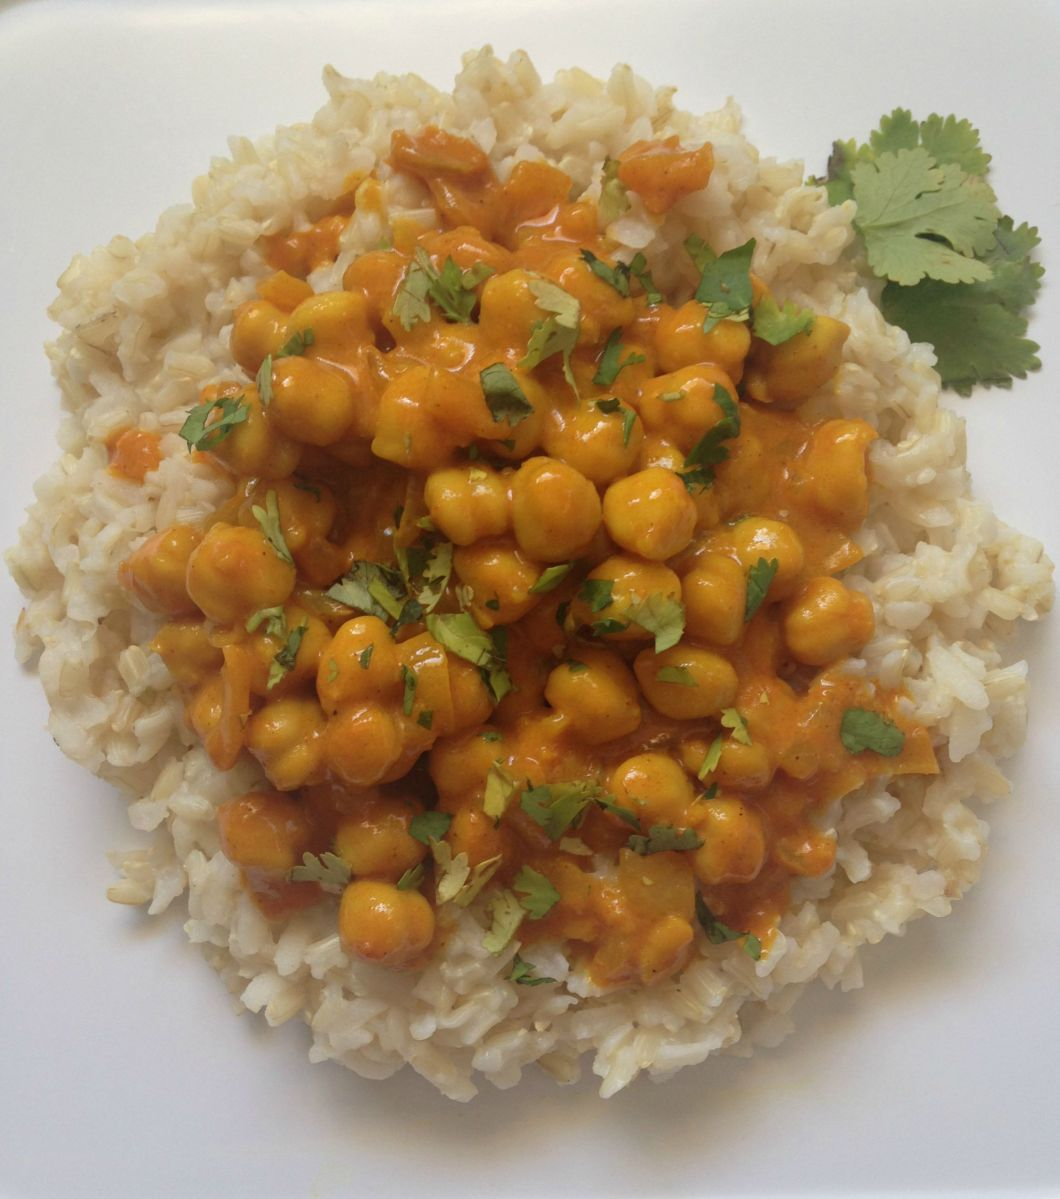 Chickpeas in Turmeric and Coconut Milk Sauce